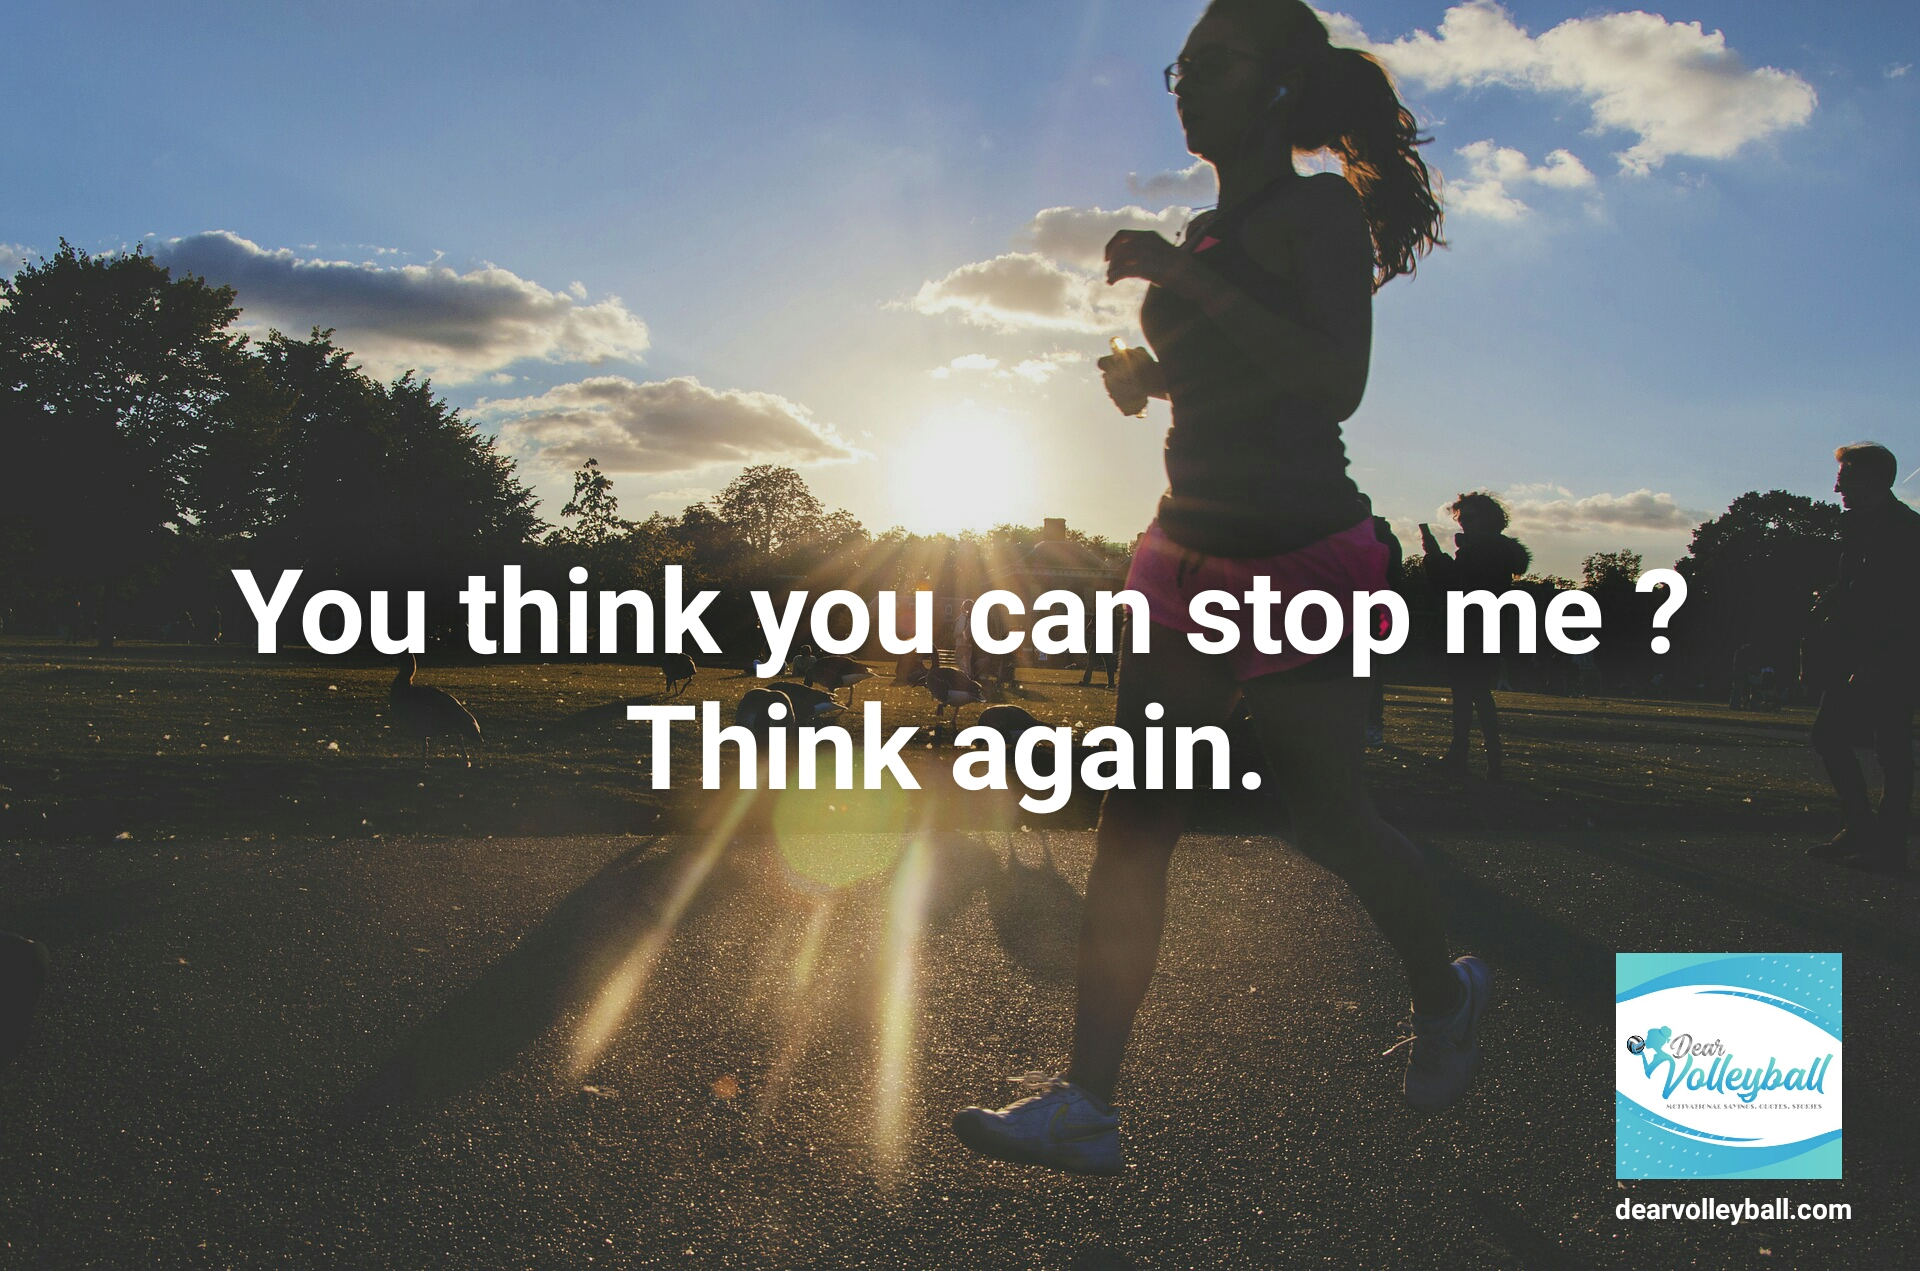 You think you can stop me and other motivational volleyball quotes on DearVolleyball.com